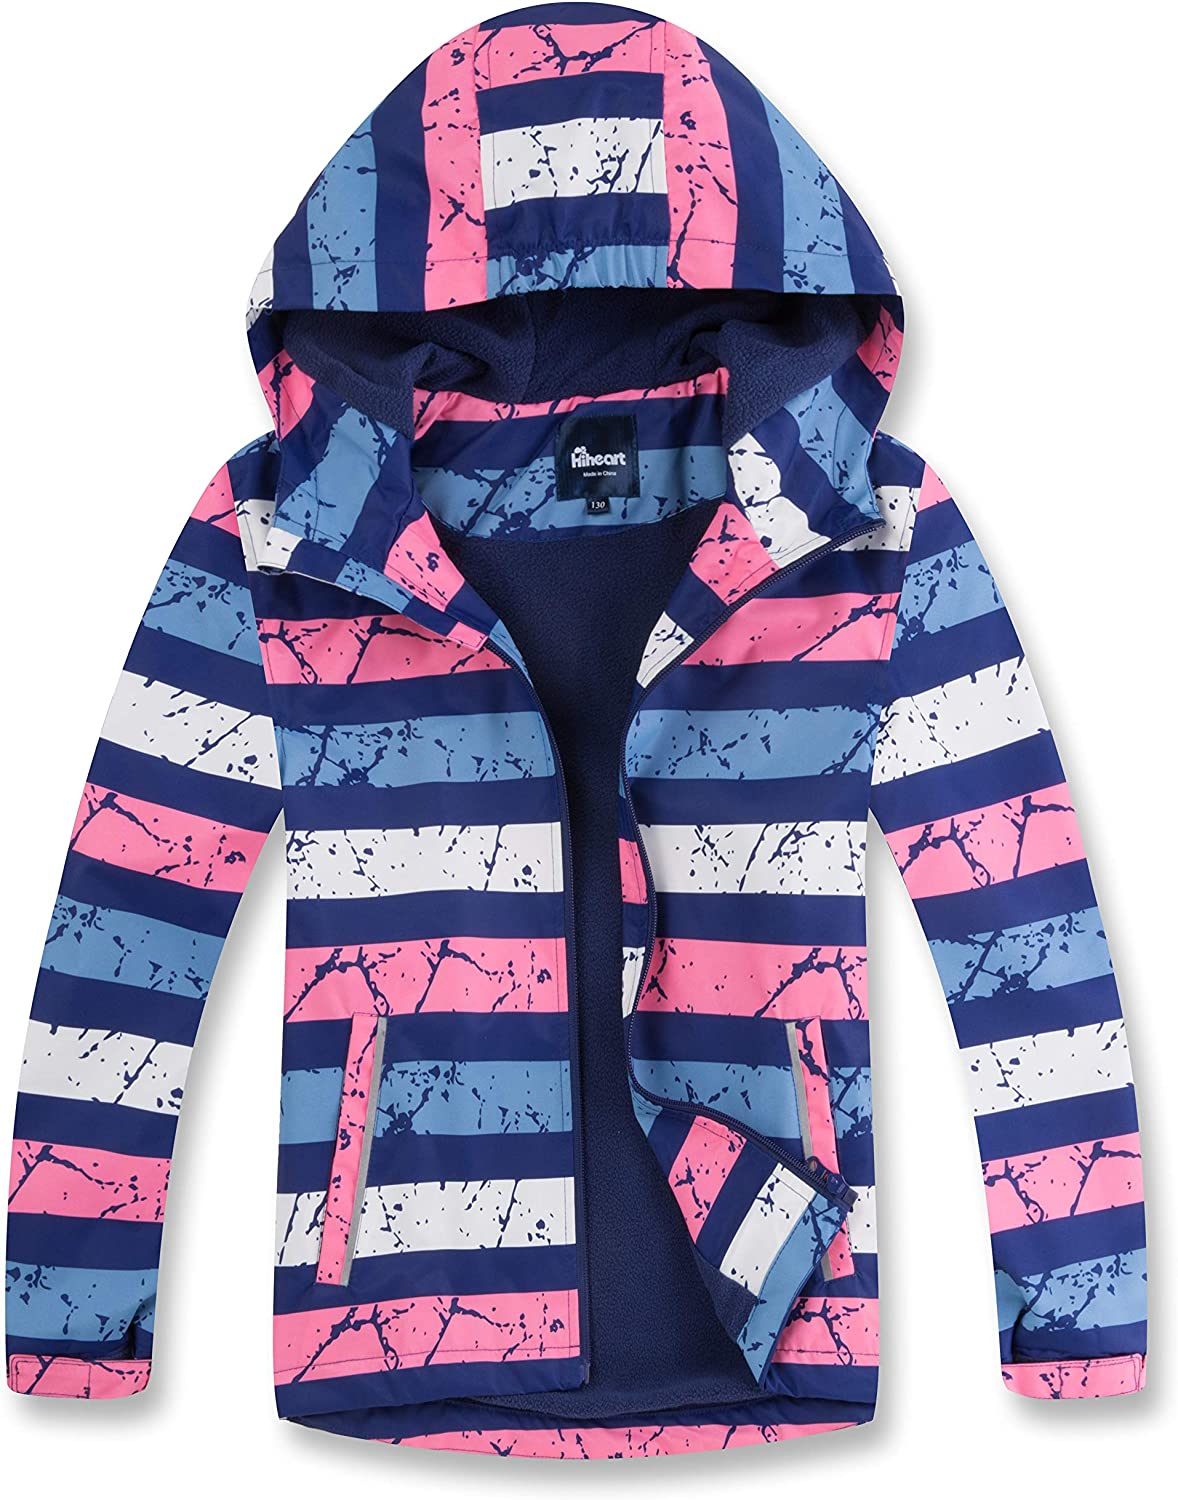 Hiheart Boys At the price Girls Fleece Lined Award-winning store Outdoo Hooded Jackets Waterproof